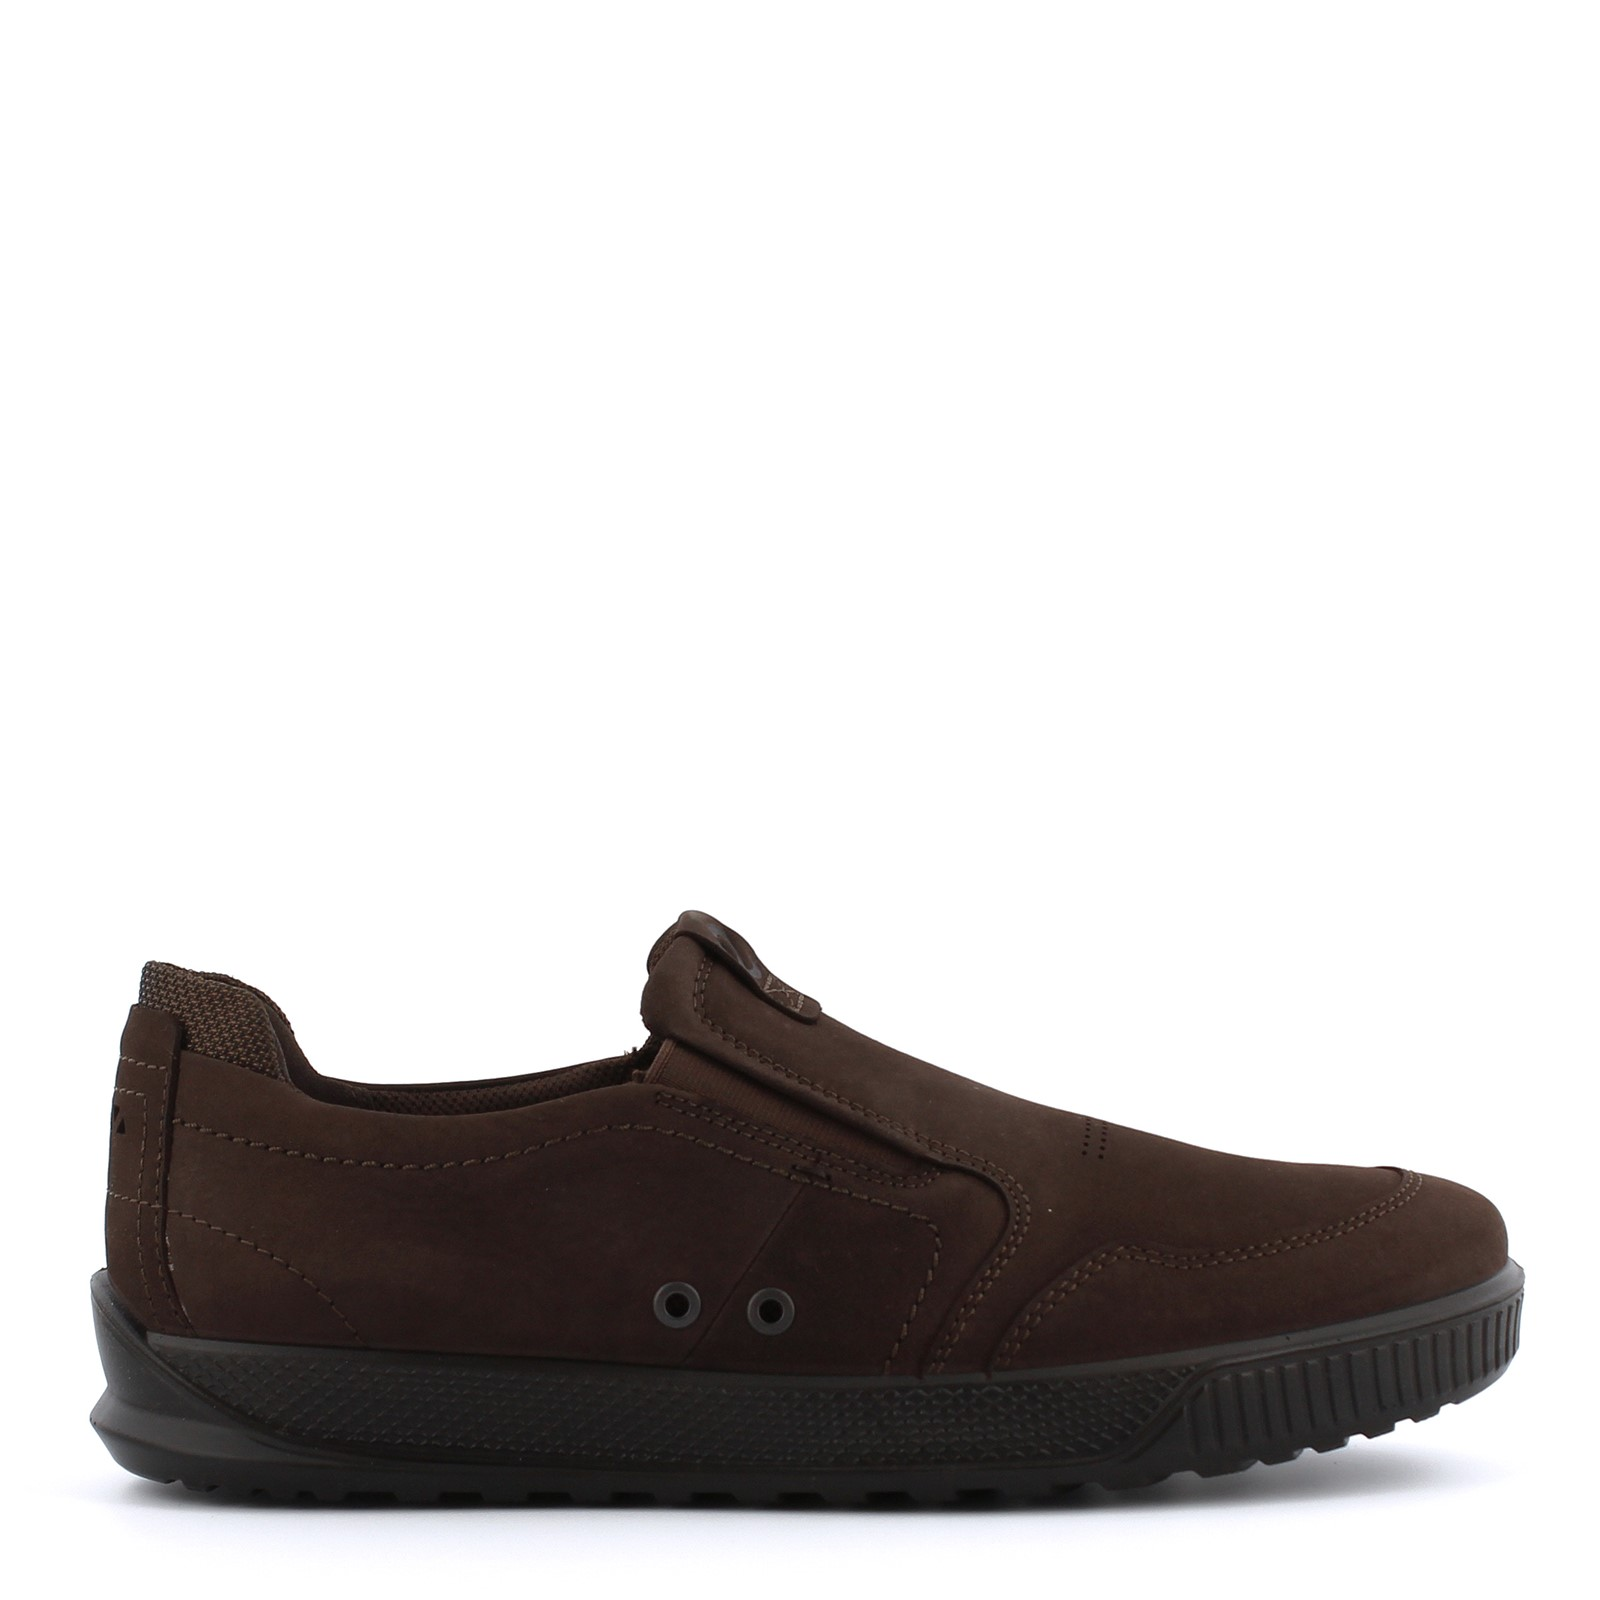 126db343cc Men's Ecco, Byway Slip on Shoe